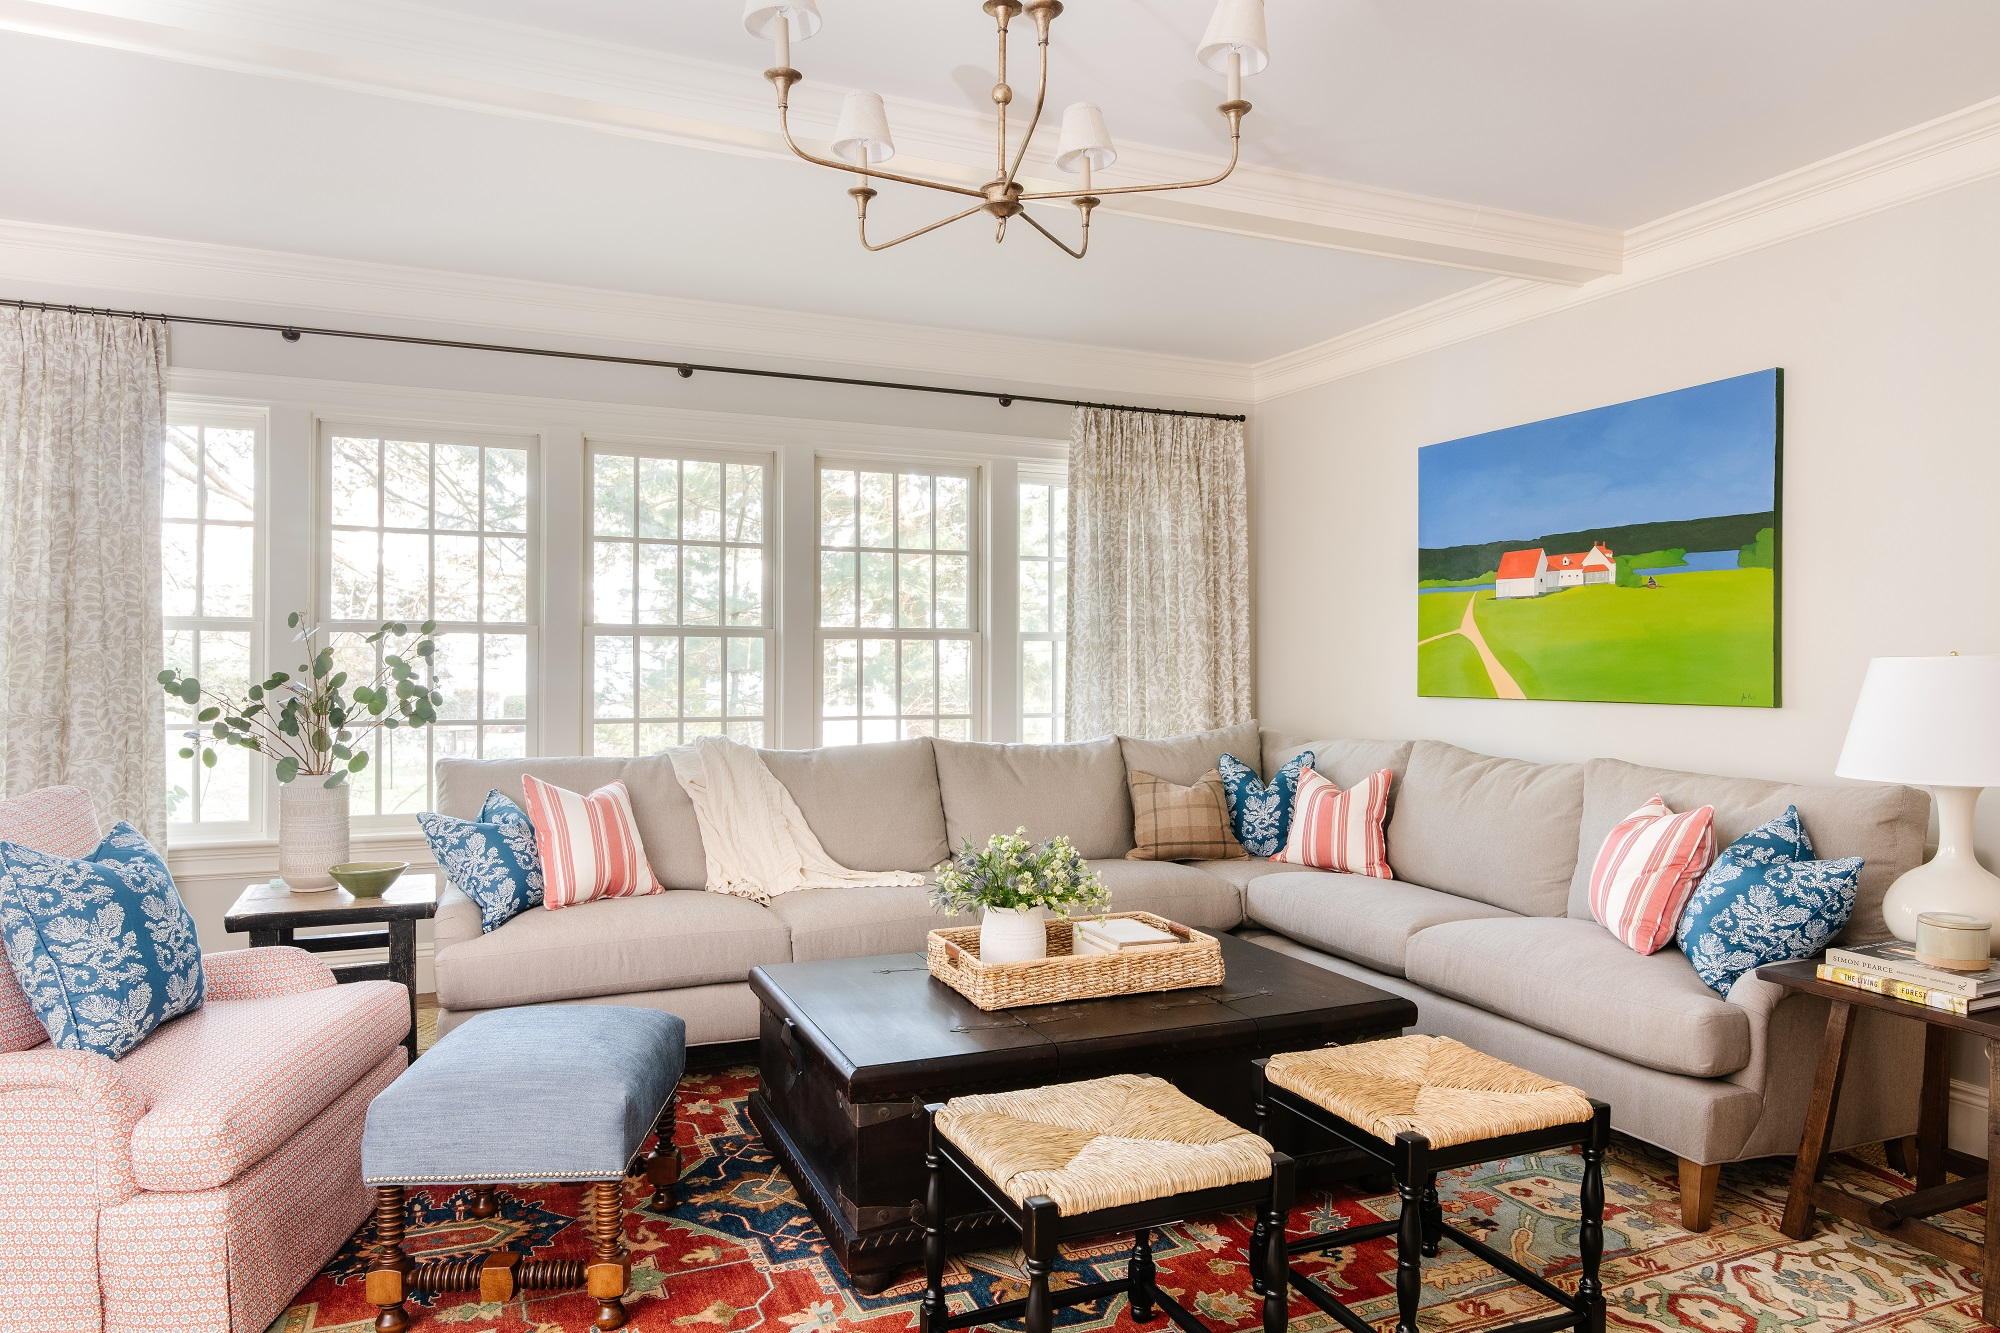 Family room design with cozy sectional